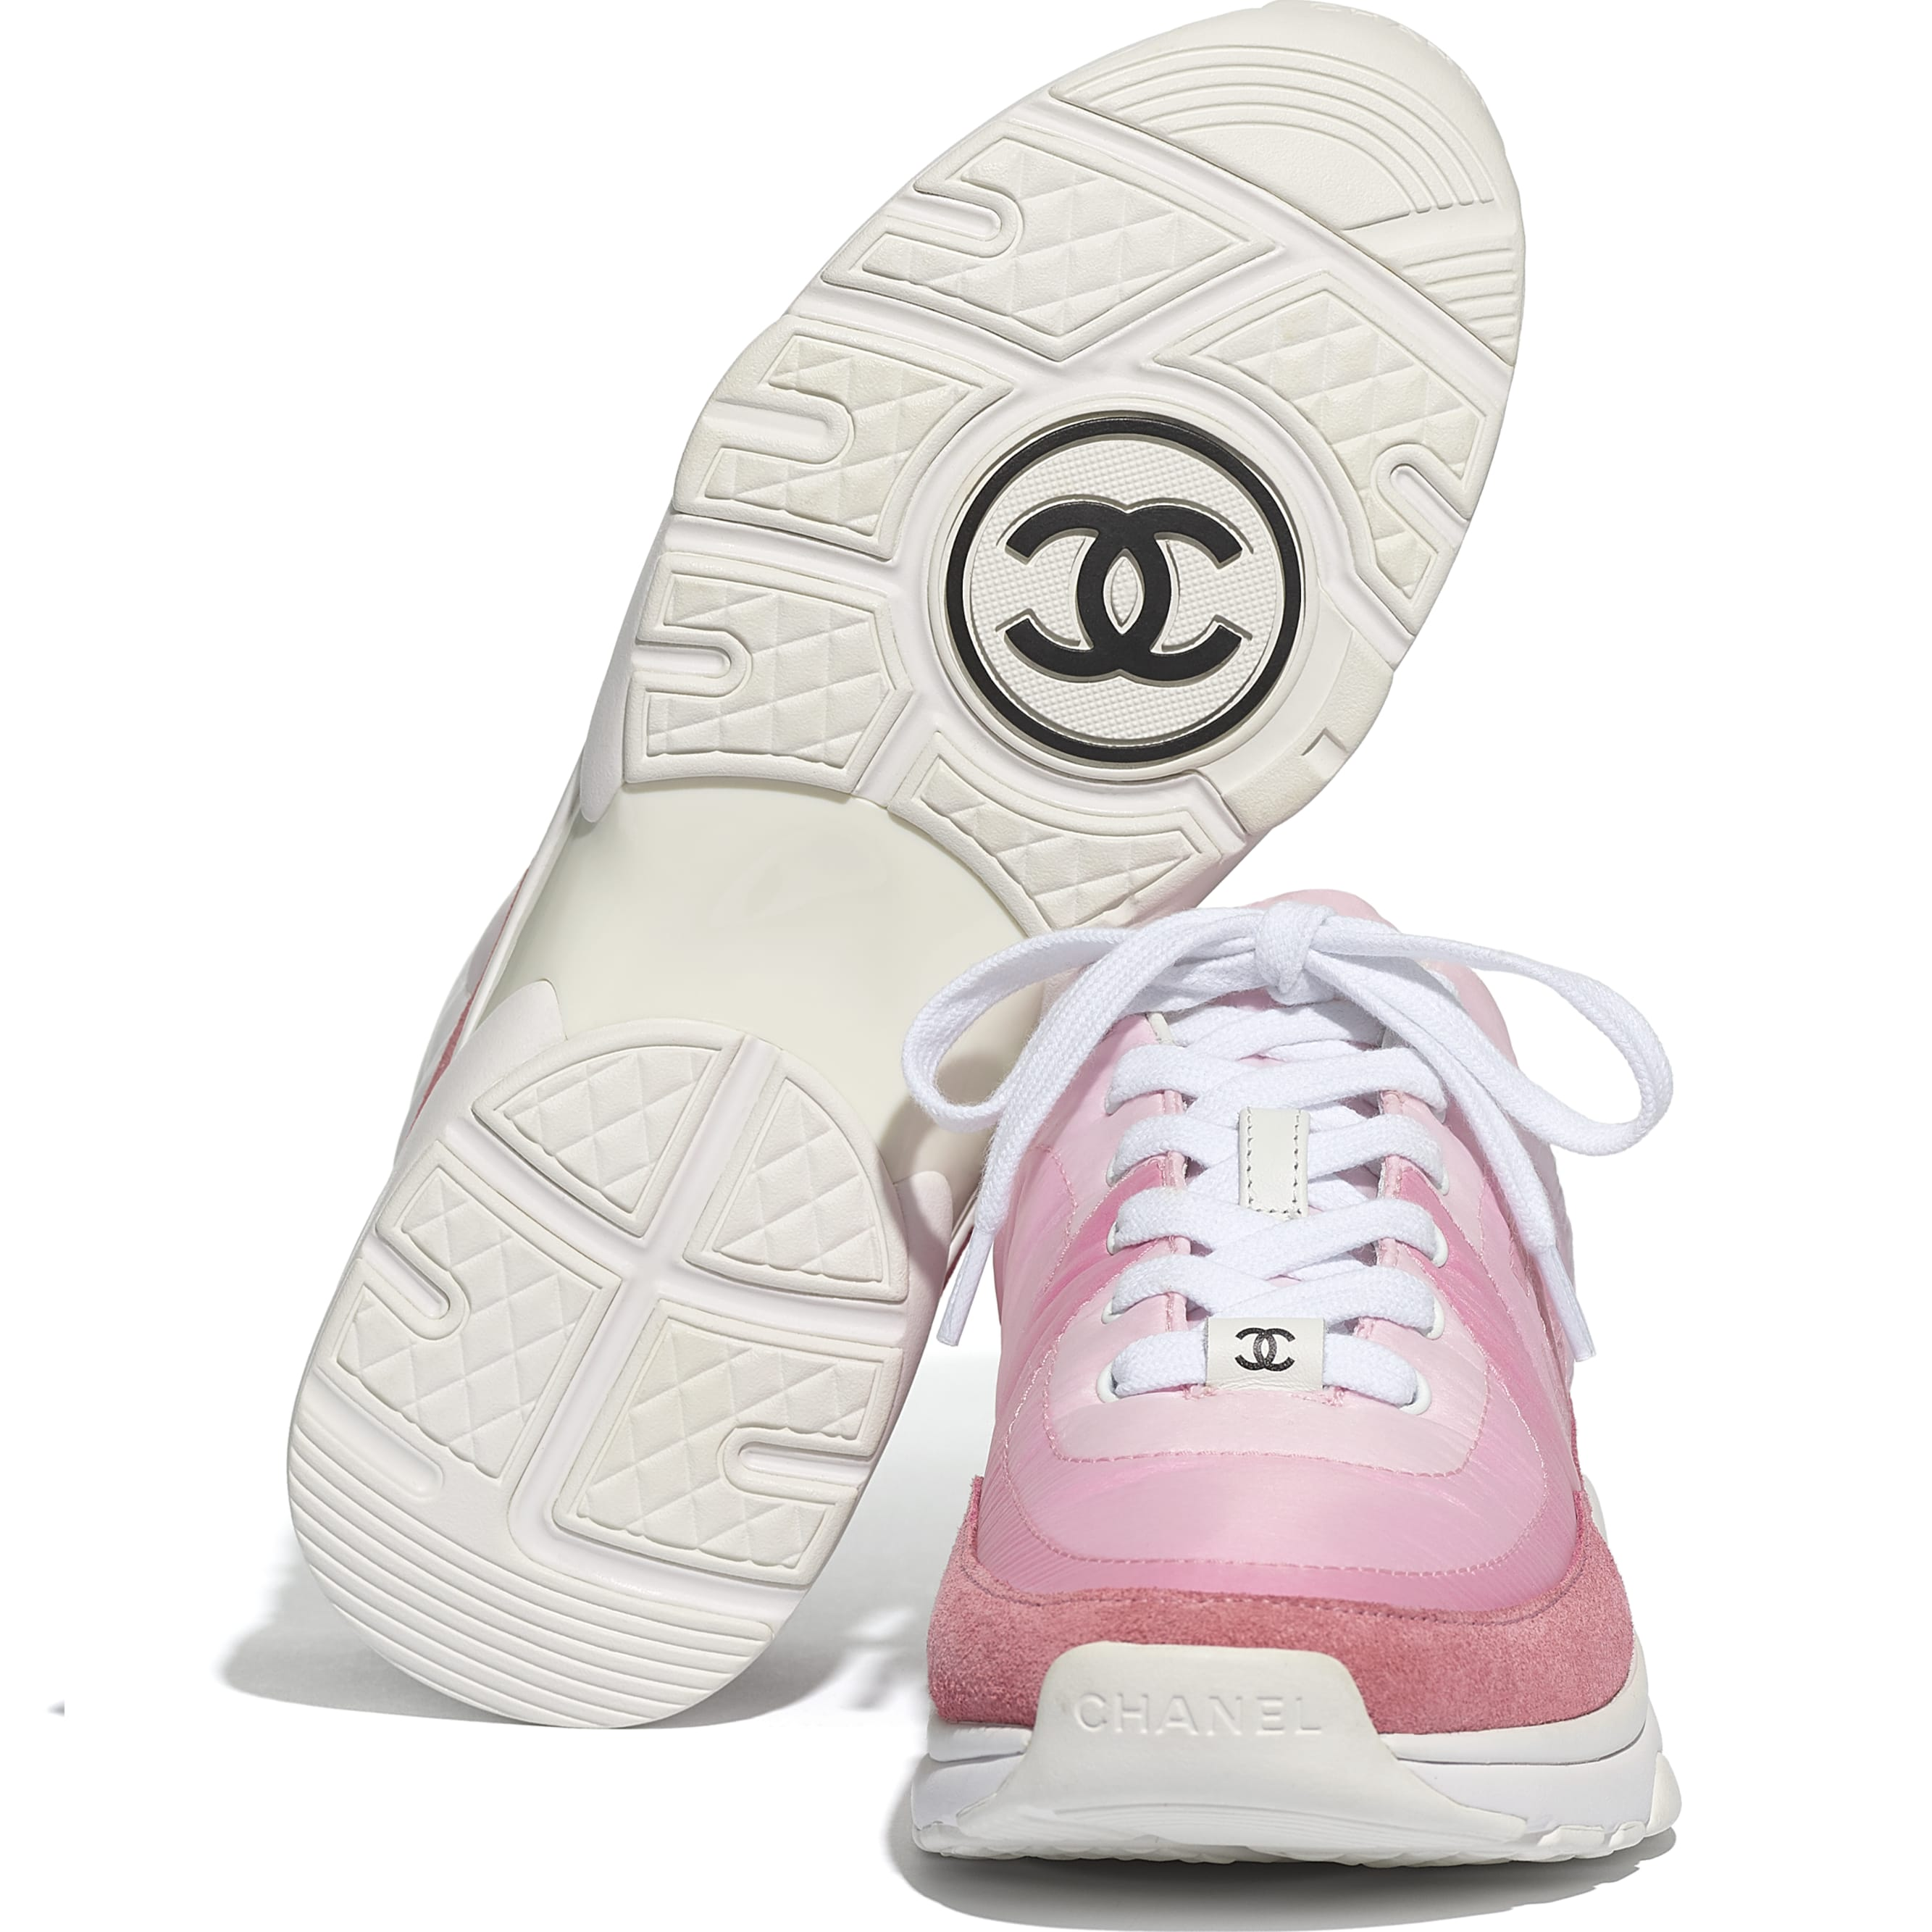 Trainers - Pale Pink - Suede Calfskin & Nylon - CHANEL - Extra view - see standard sized version